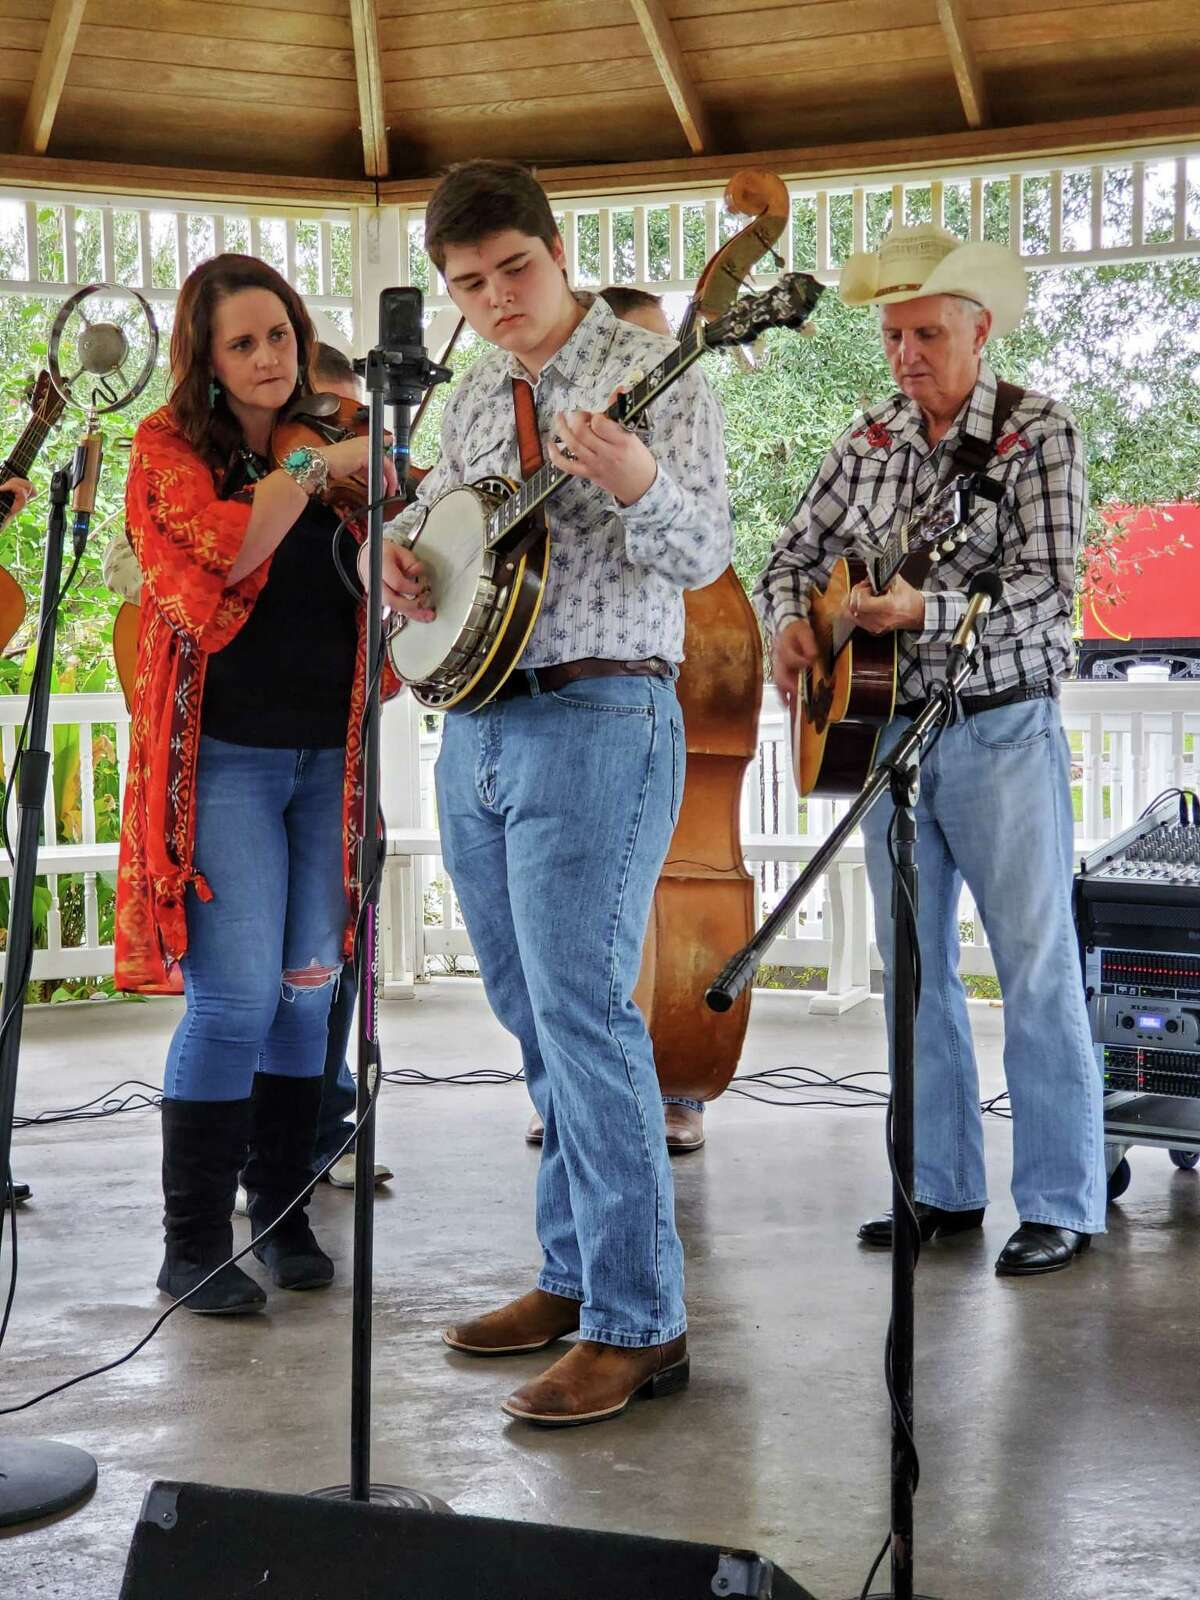 Vintage Sounds is among the bands scheduled to play during Bluegrass Tomball. The event returns this year on Oct. 16, 2021 at the downtown Depot Plaza.